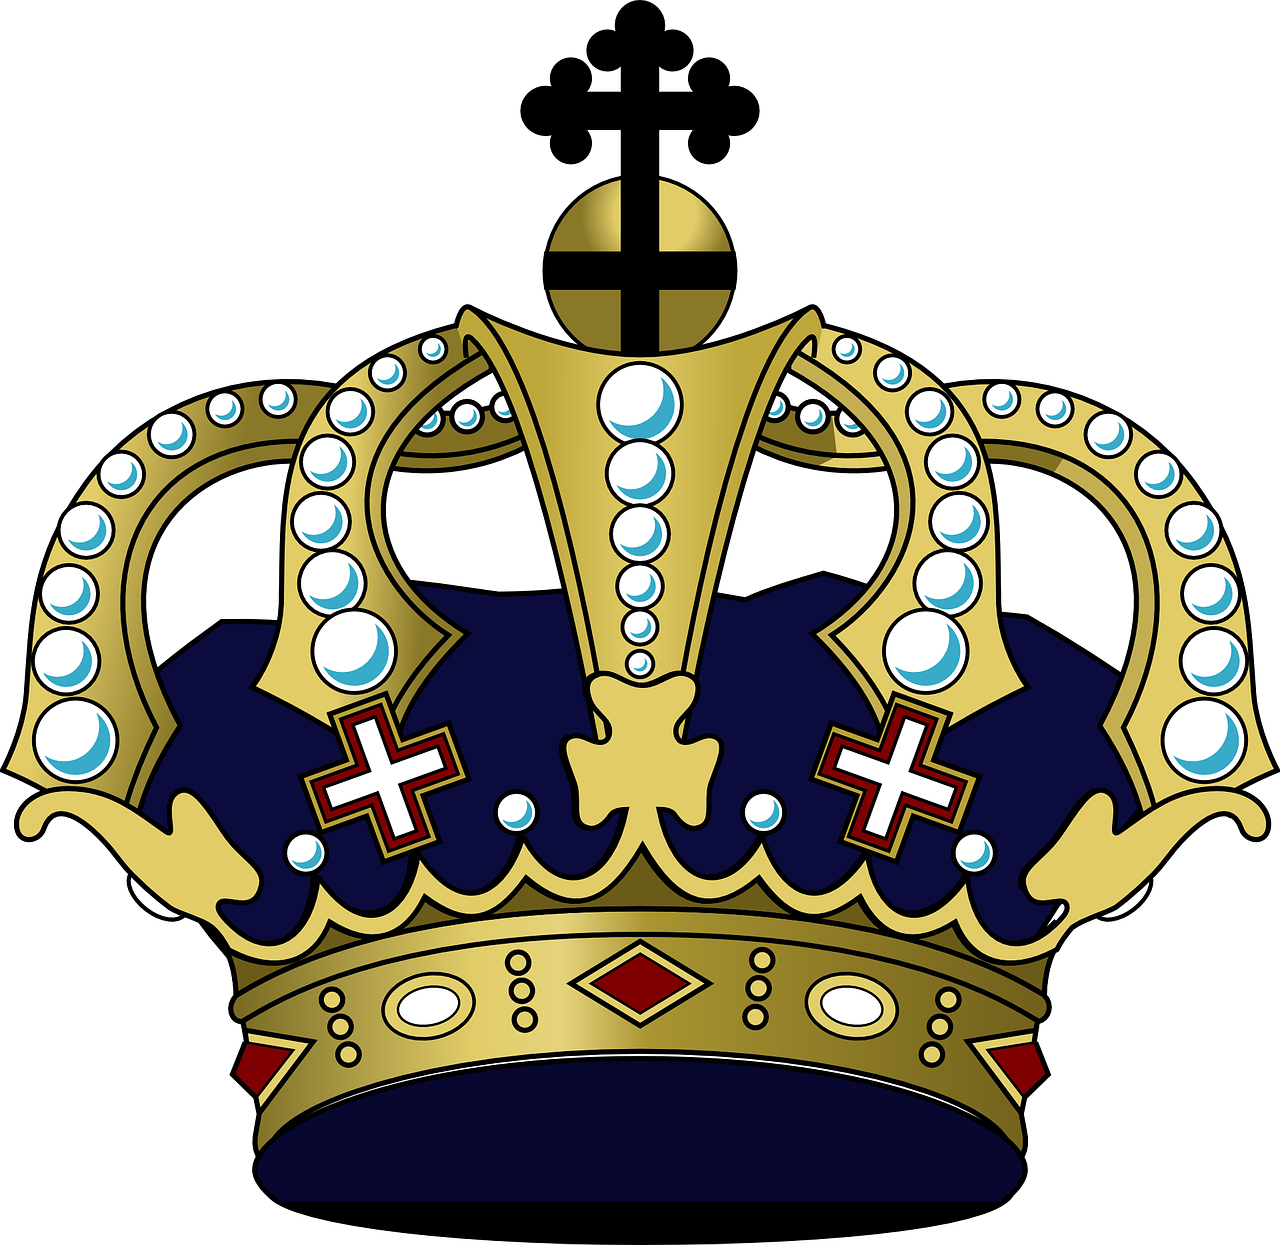 Crown heart clipart free jpg freeuse stock Crown Royal Clipart cross - Free Clipart on Dumielauxepices.net jpg freeuse stock